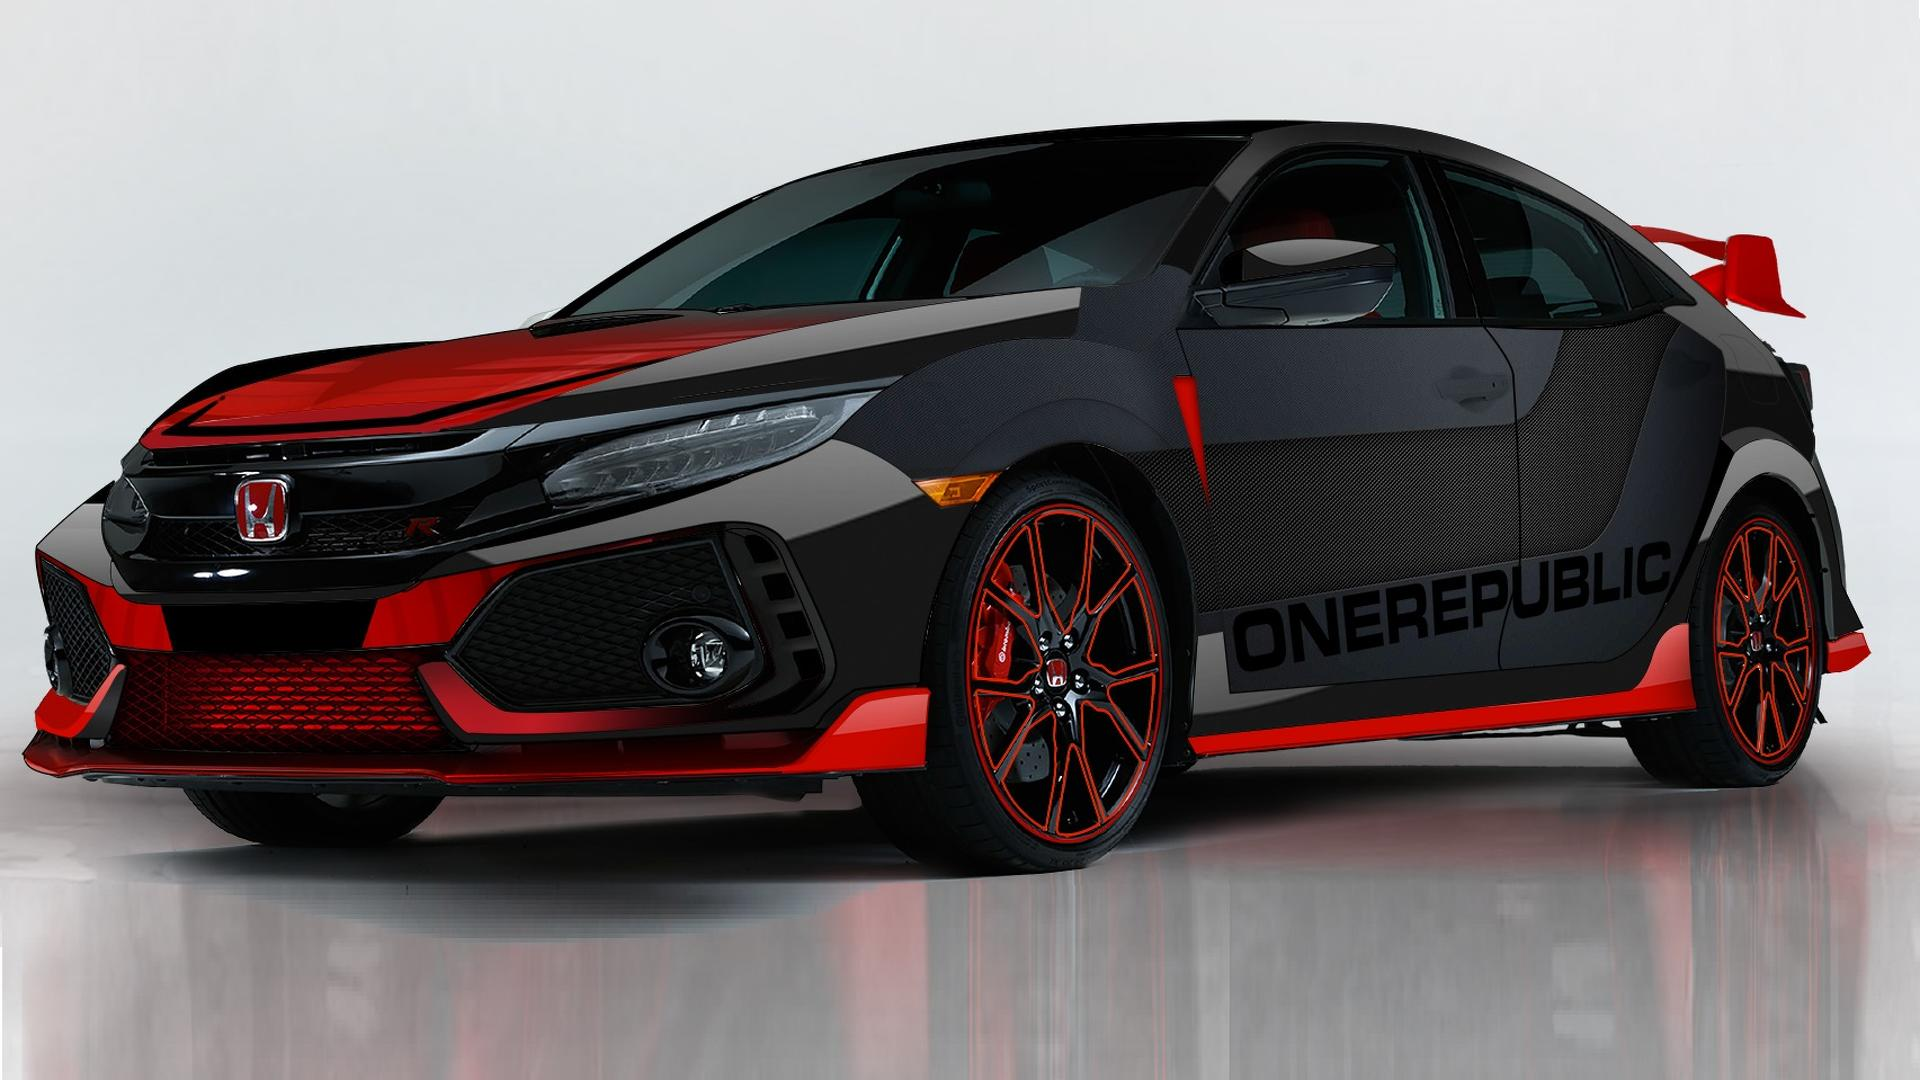 honda says onerepublic took this civic type r to the next. Black Bedroom Furniture Sets. Home Design Ideas